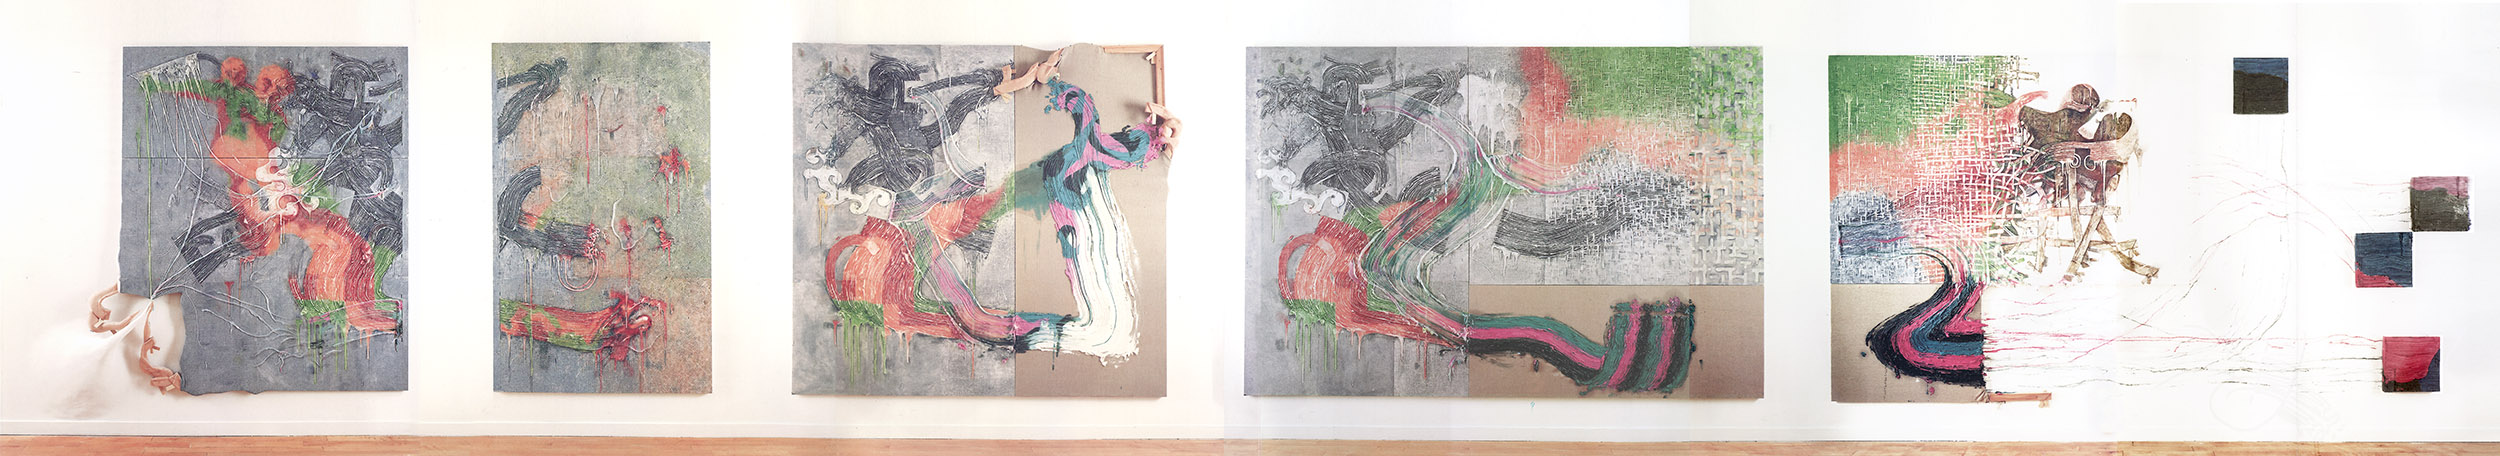 Altered Genetics of Painting (all), 1992-1993